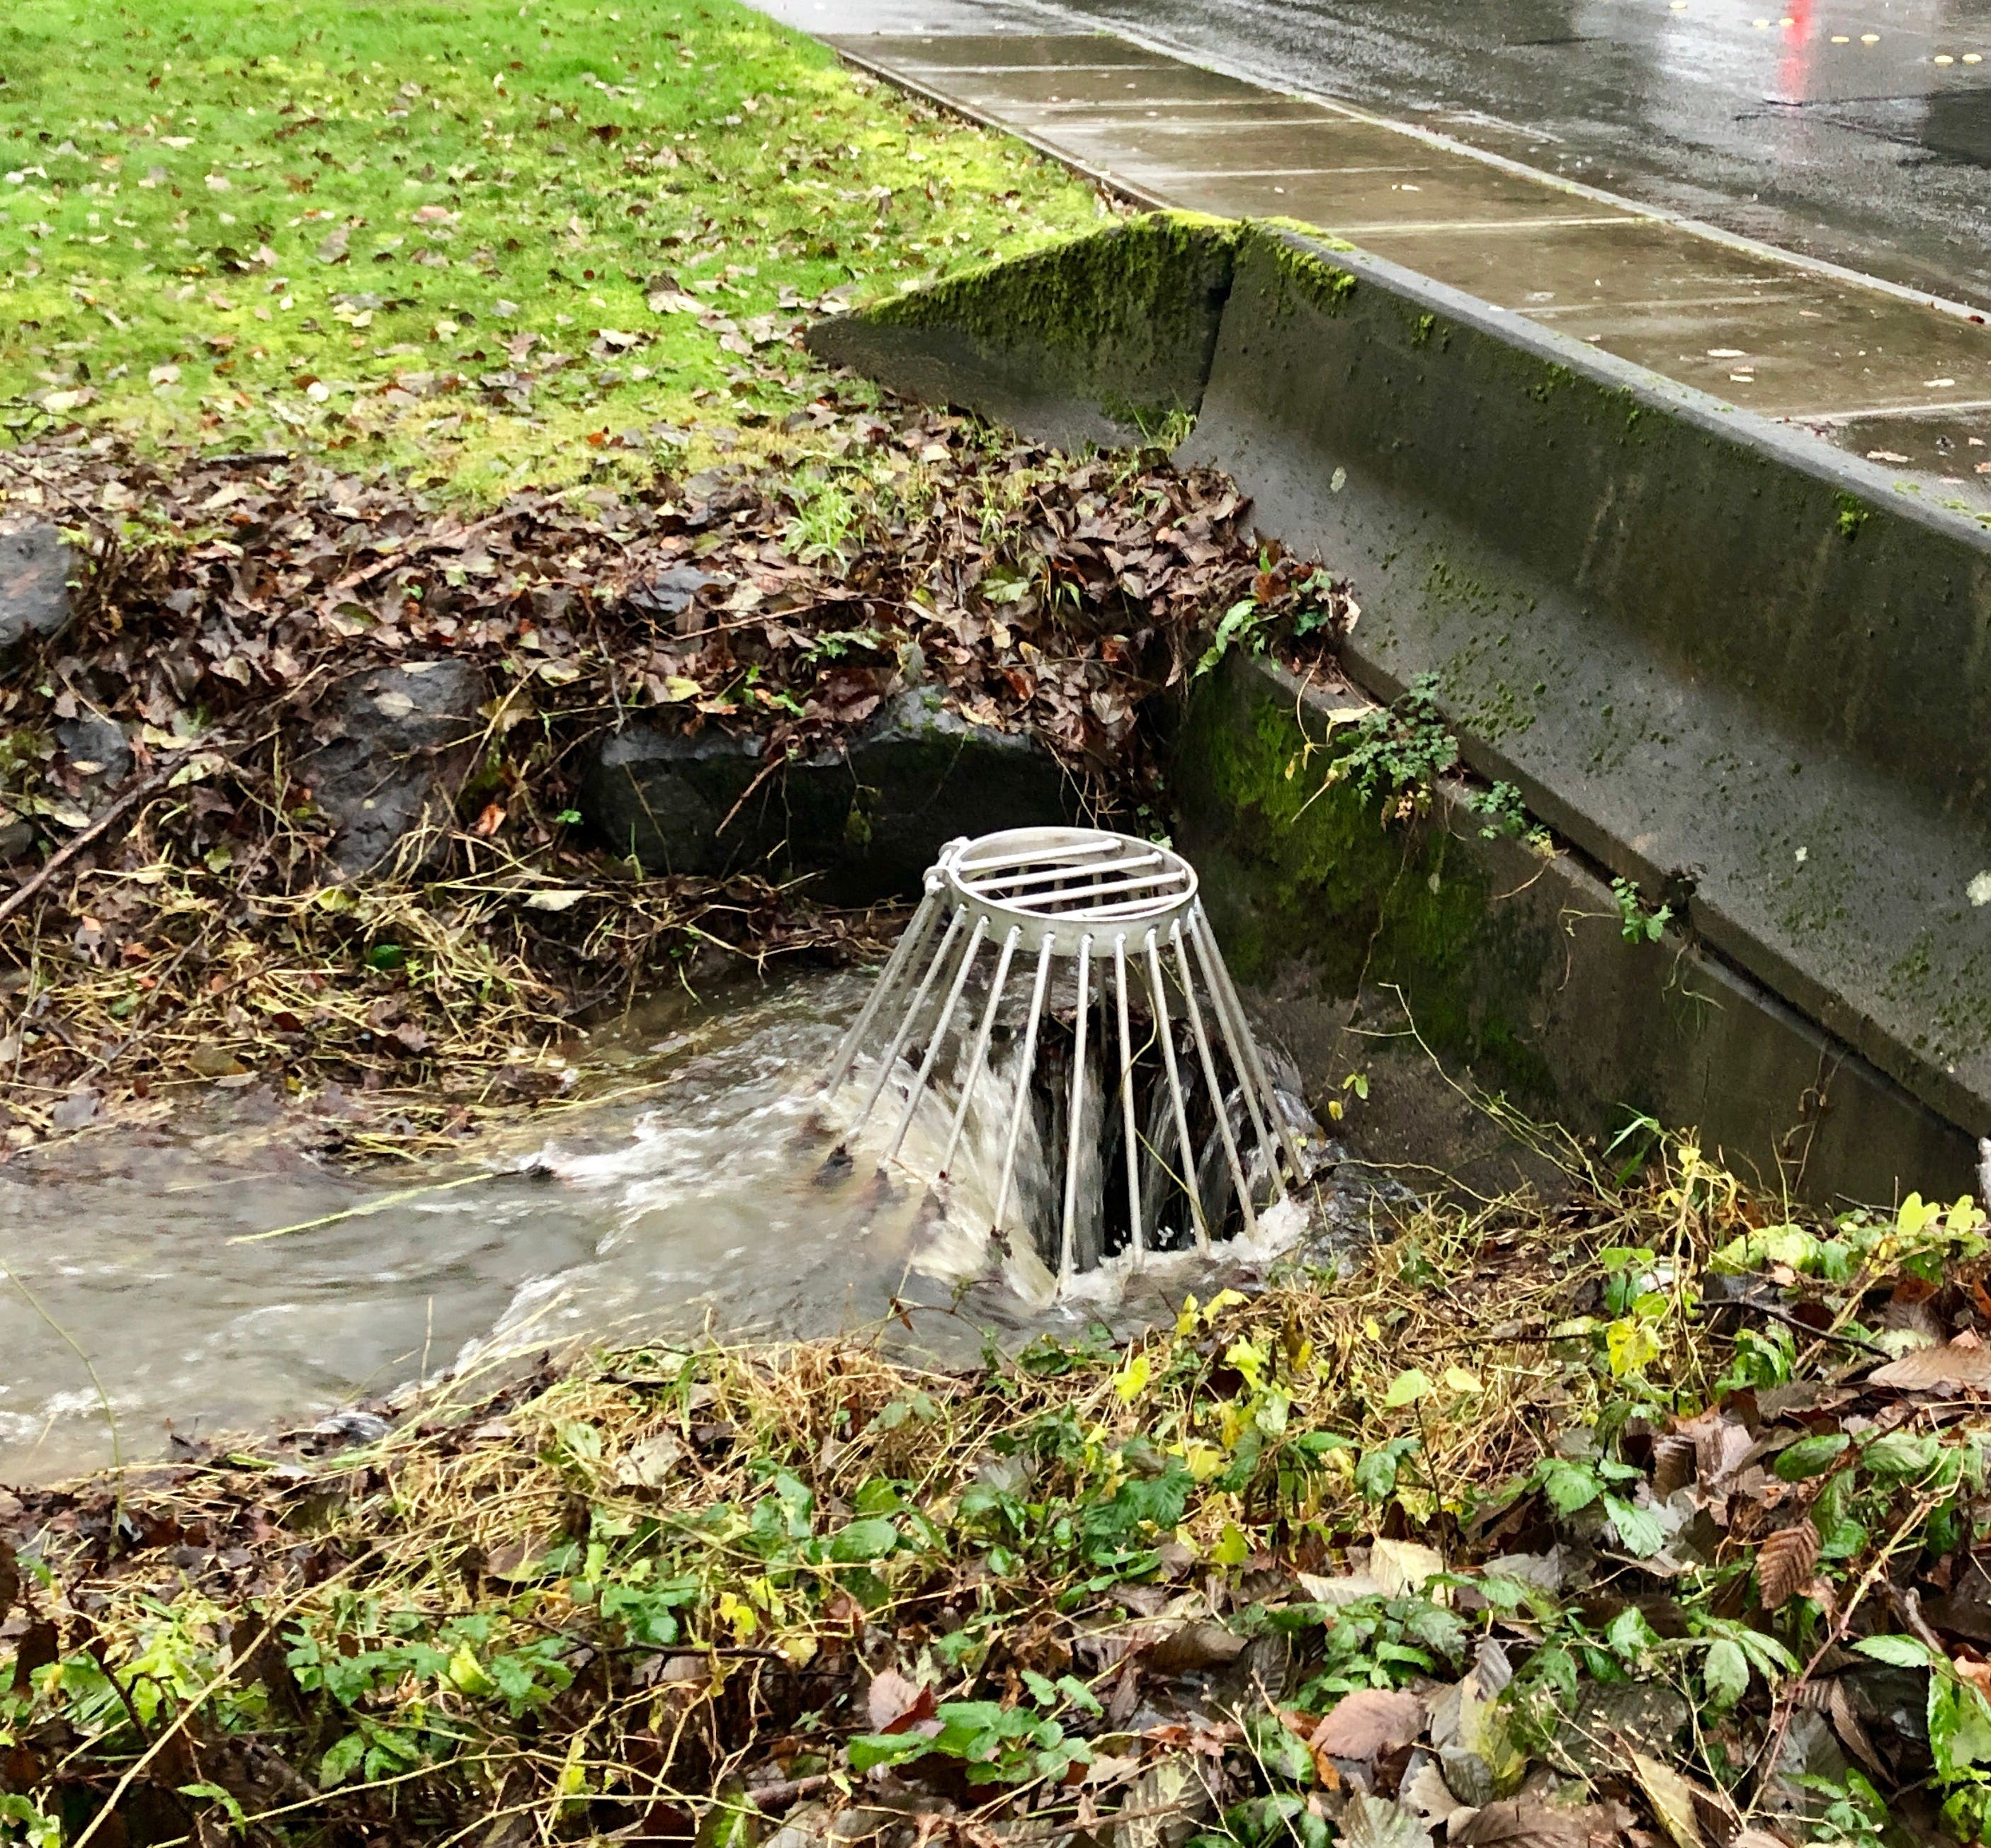 Please Help Clear Local Storm Drains When Safe!